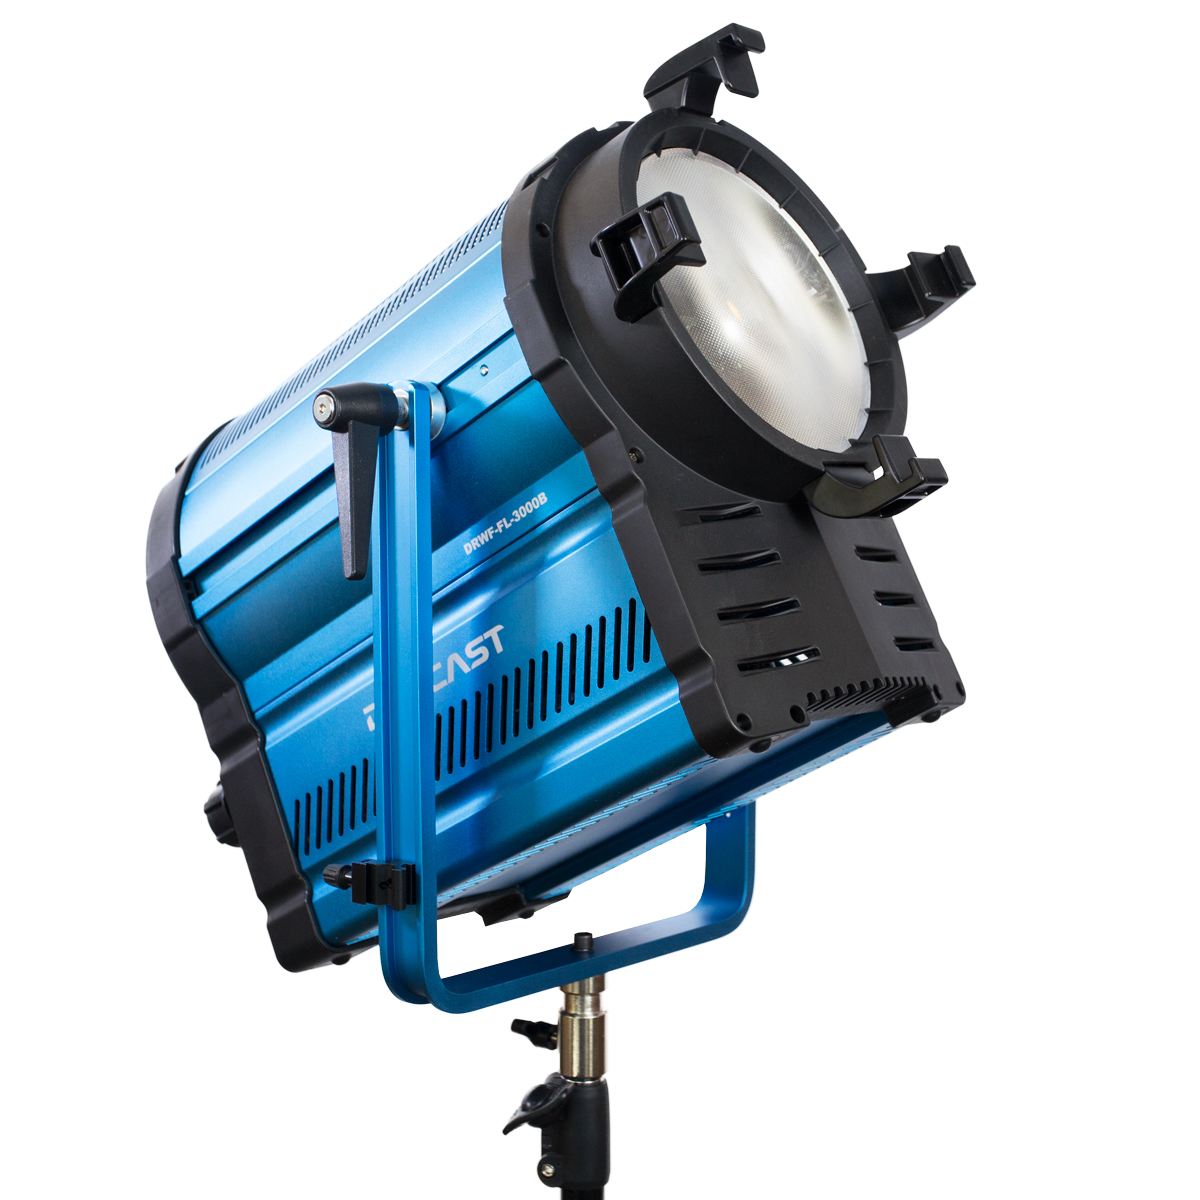 Led Studio Light Repair: LED Fresnel 3000 Studio Light